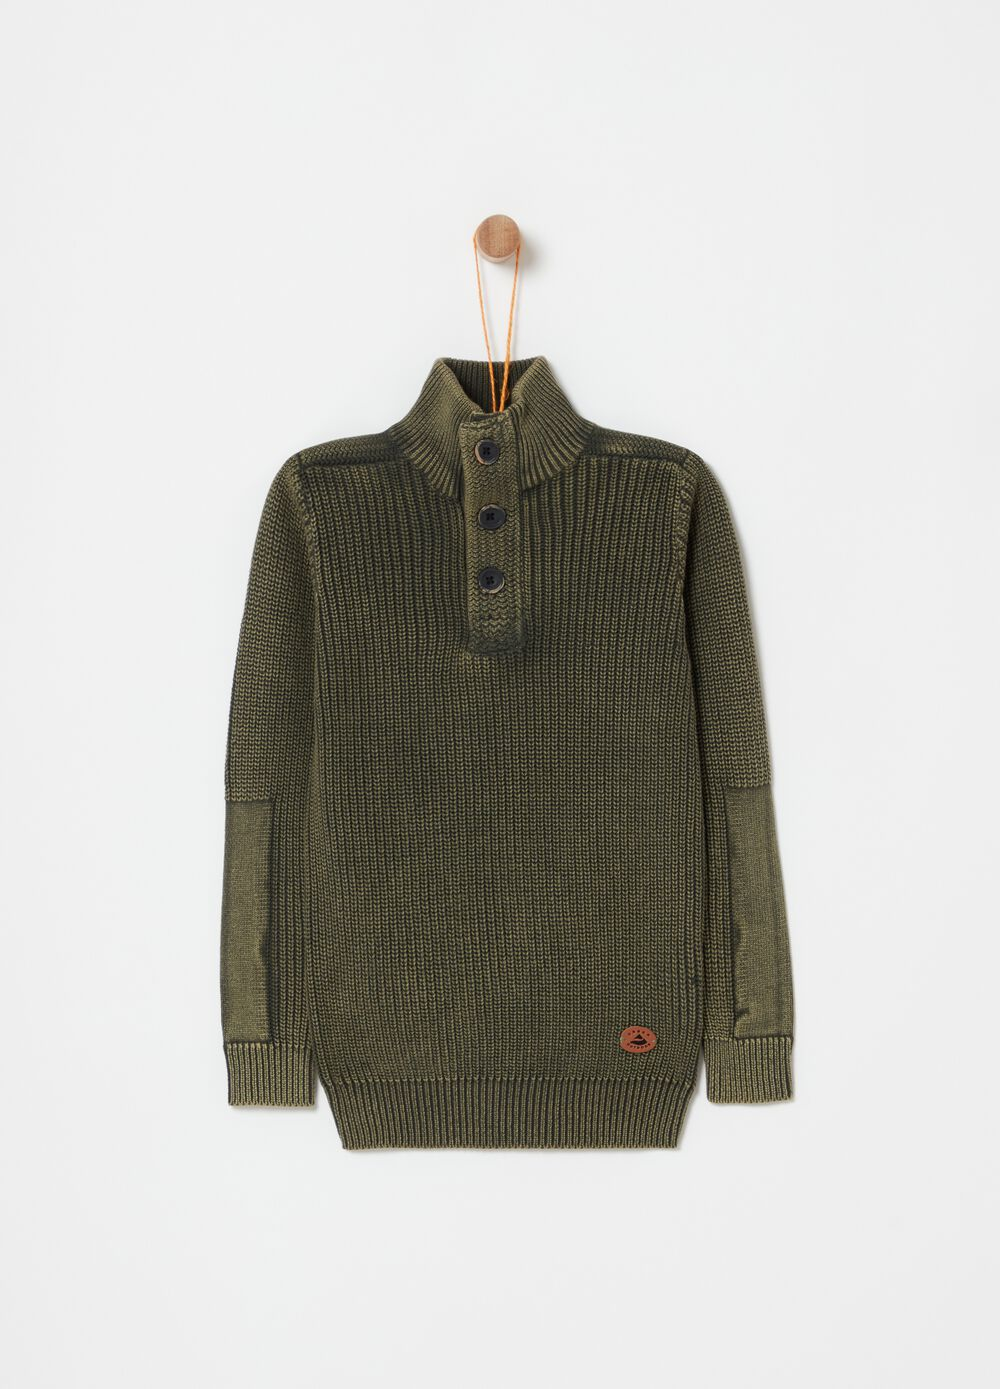 Knitted pullover with high neck with buttons